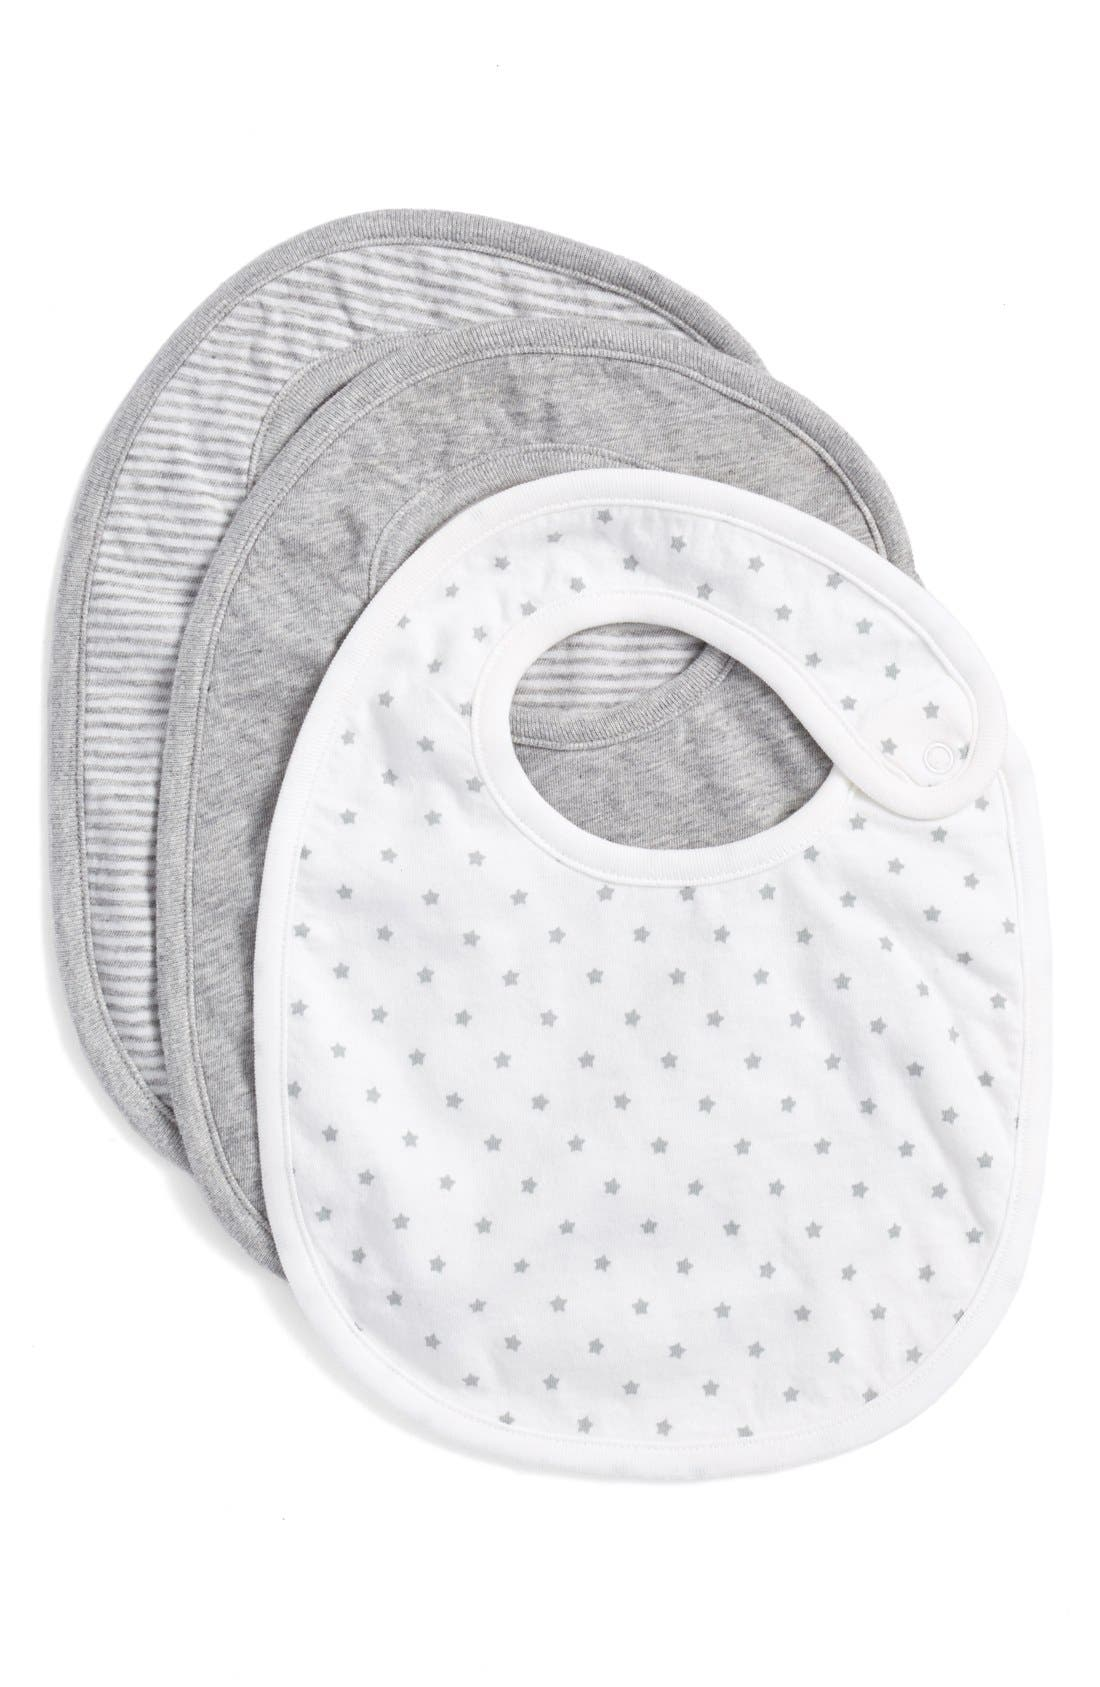 Snap Bibs,                             Main thumbnail 1, color,                             GREY ASH HEATHER